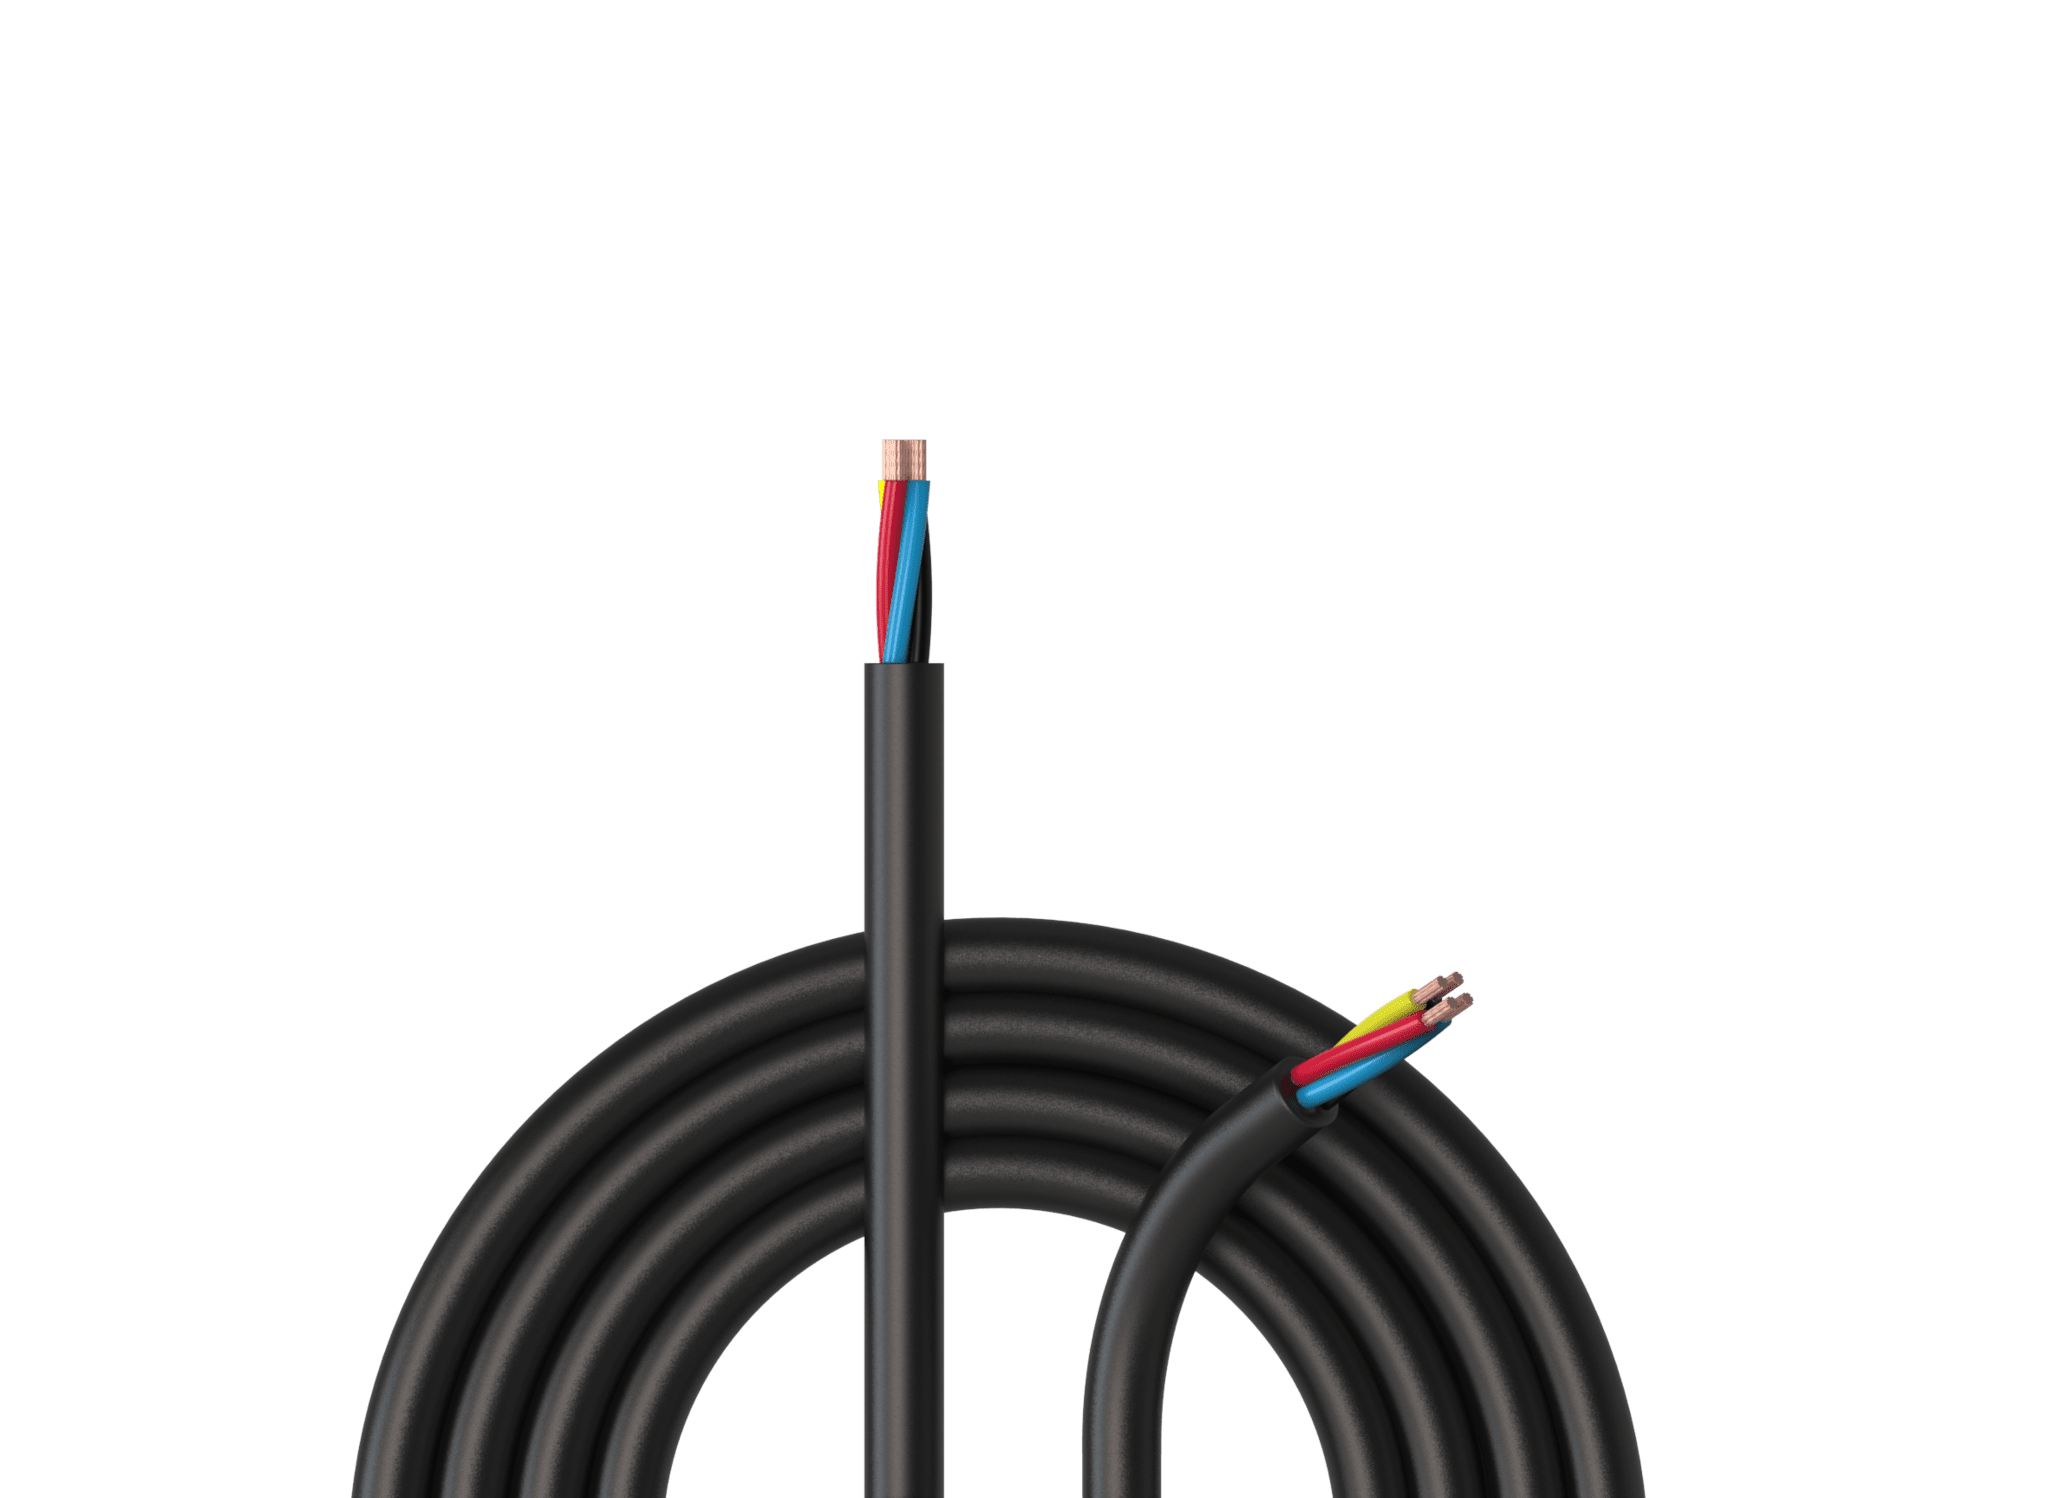 Speaker cables -